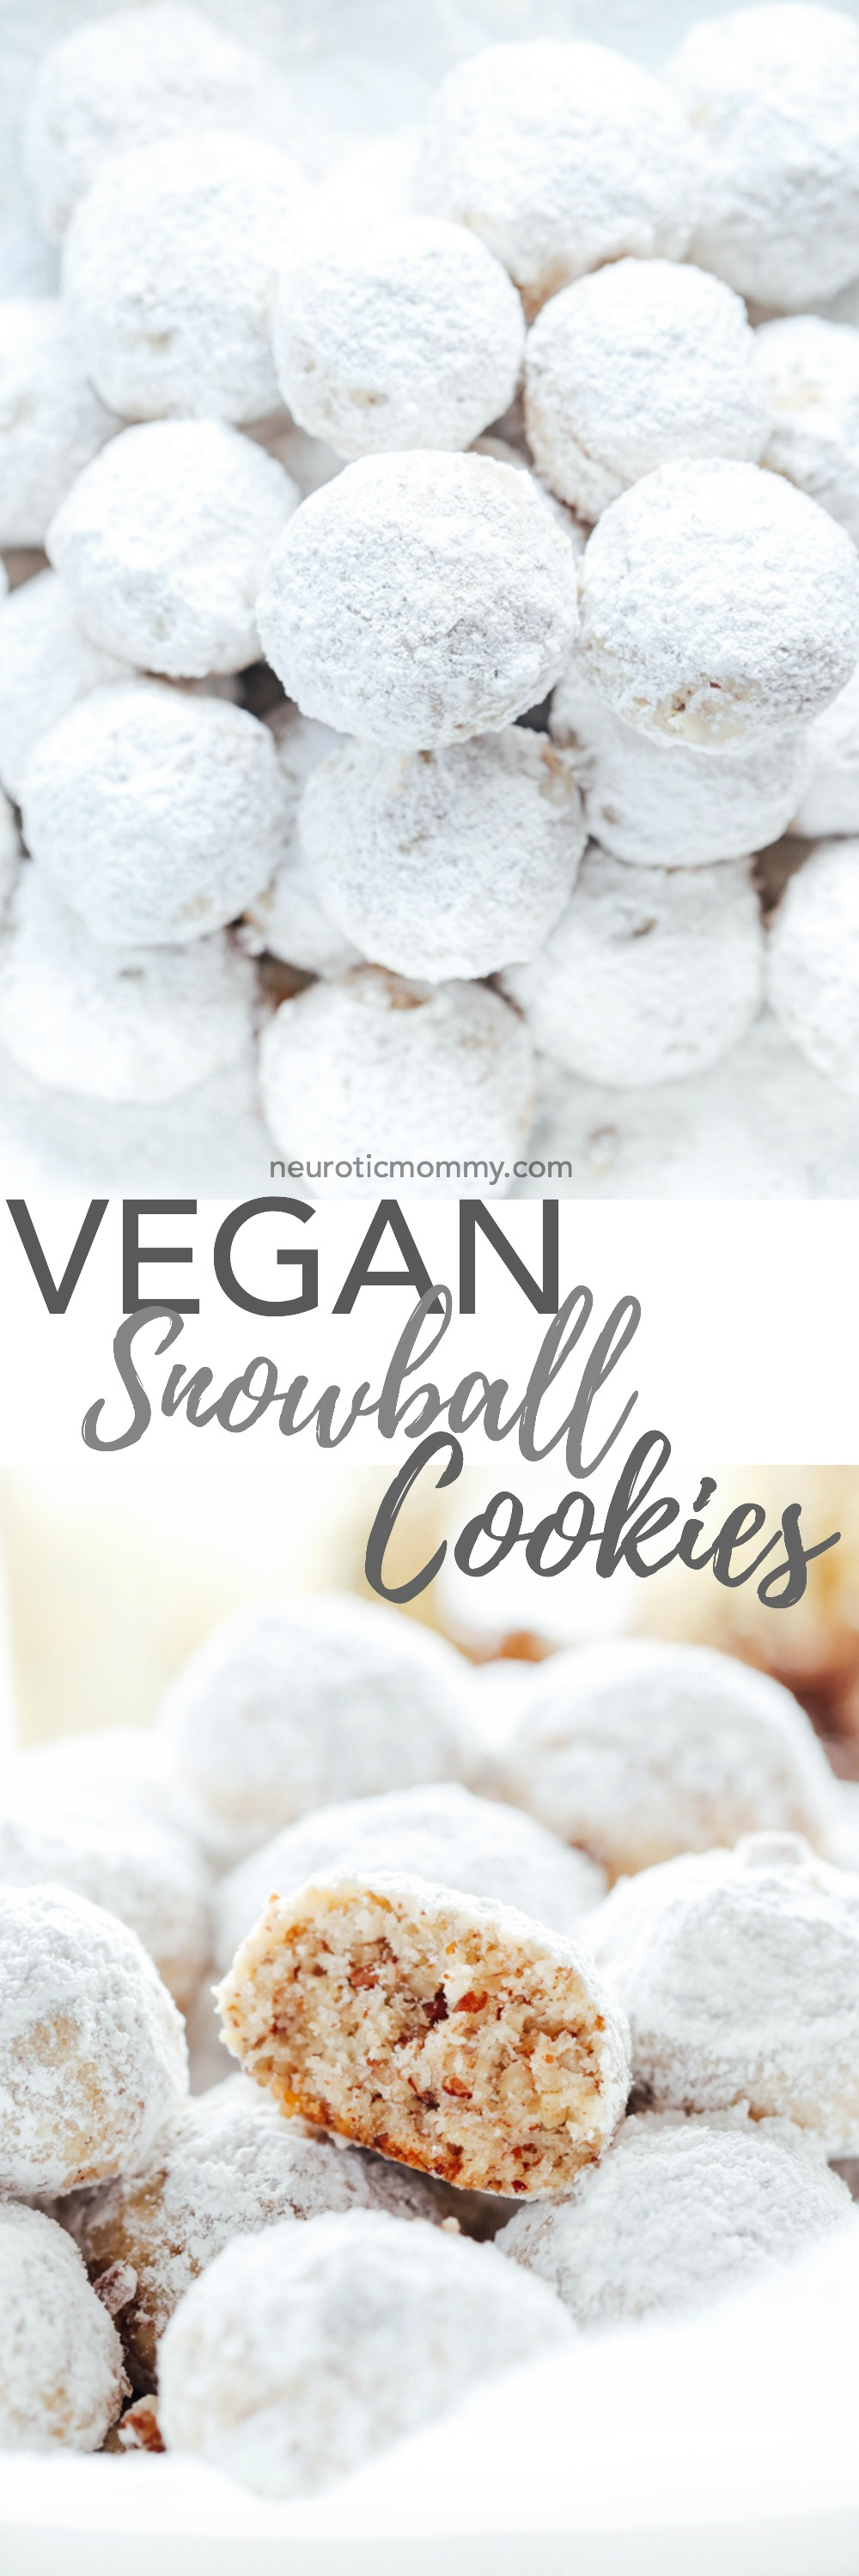 Vegan Snowball Cookies - Buttery and delicious pecan shortbread cookies coated in powered sugar. You won't be able to have just one! The perfect addition to your cookie boxes and holiday gatherings. NeuroticMommy.com #vegan #christmascookies #cookies